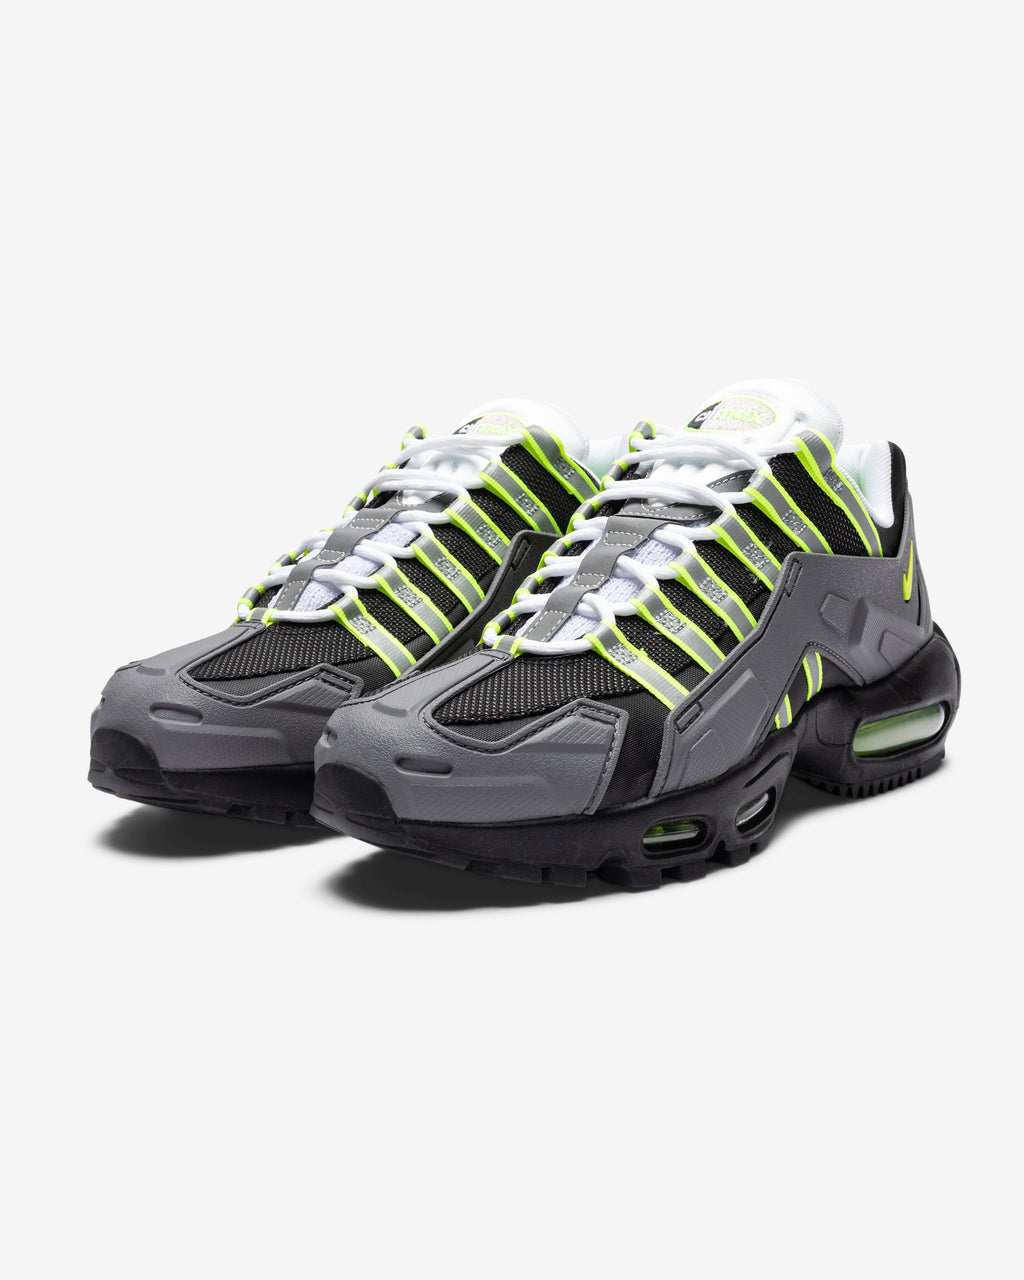 AIR MAX 95 NDSTRKT - BLACK/ NEONYELLOW/ MEDIUMGREY